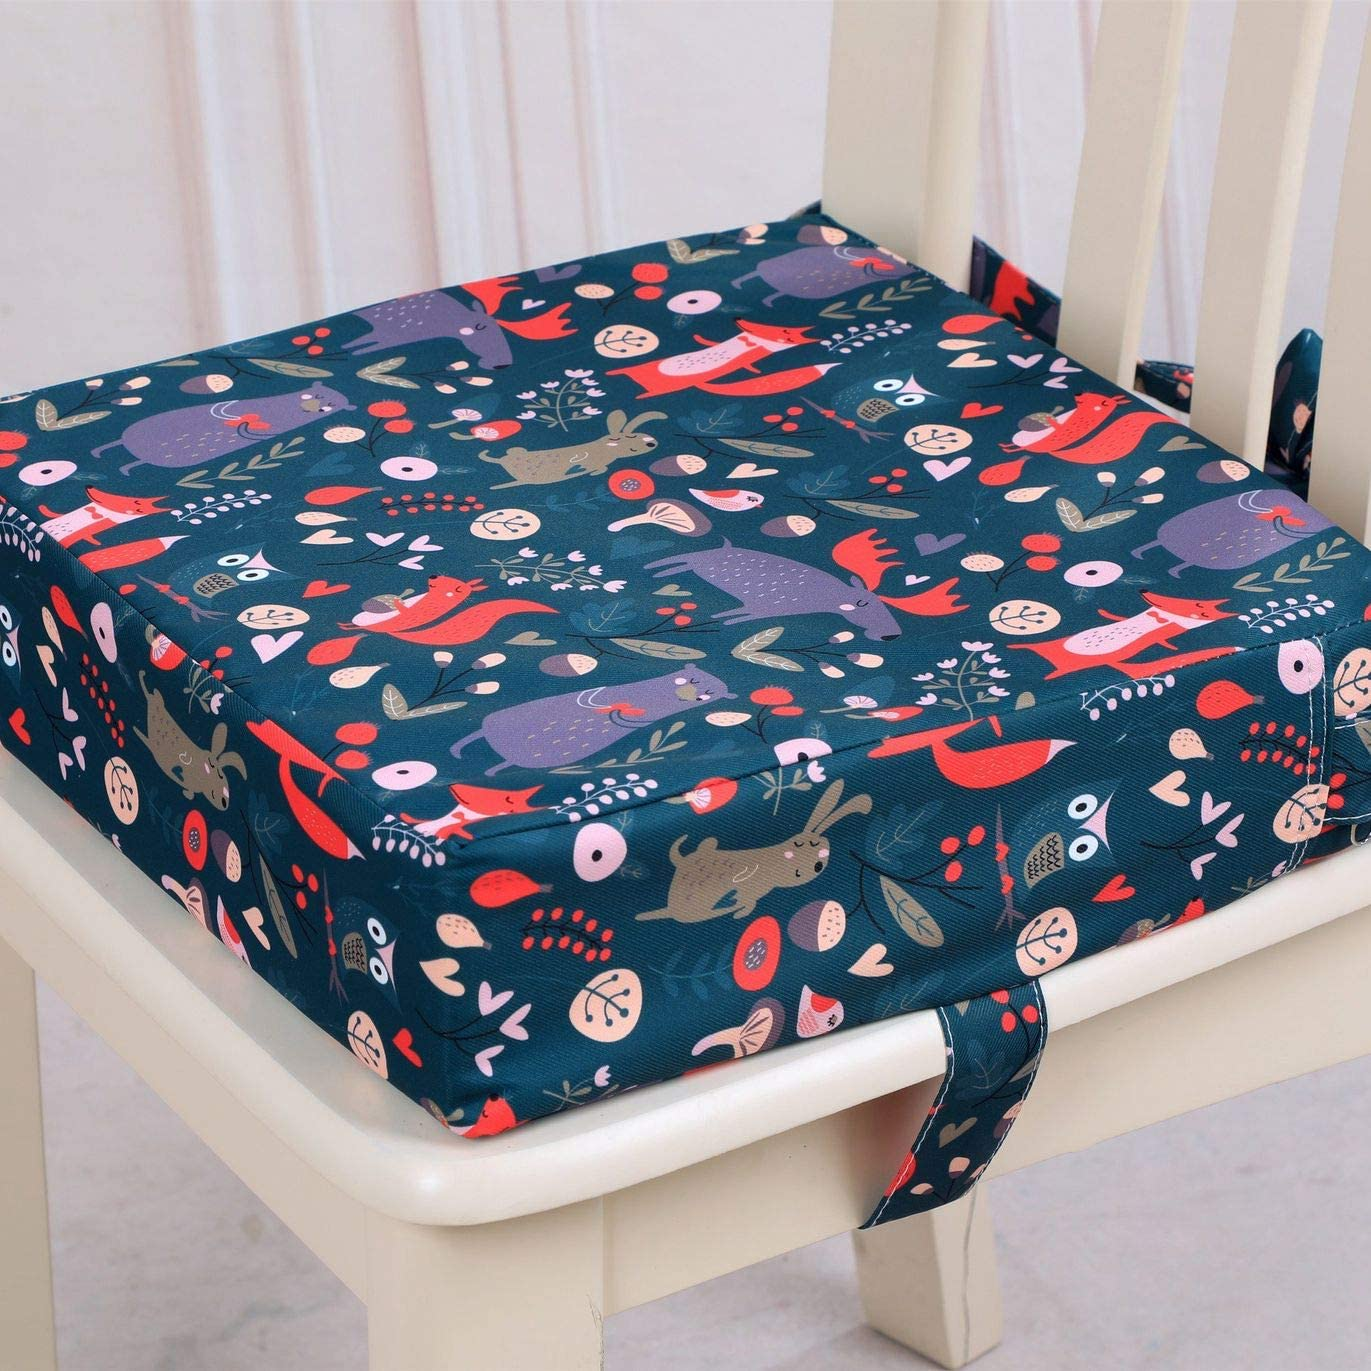 PQZATX Children Increased Chair Pad Baby Dining Cushion Adjustable Removable Highchair Chair Booster Cushion Seat Chair